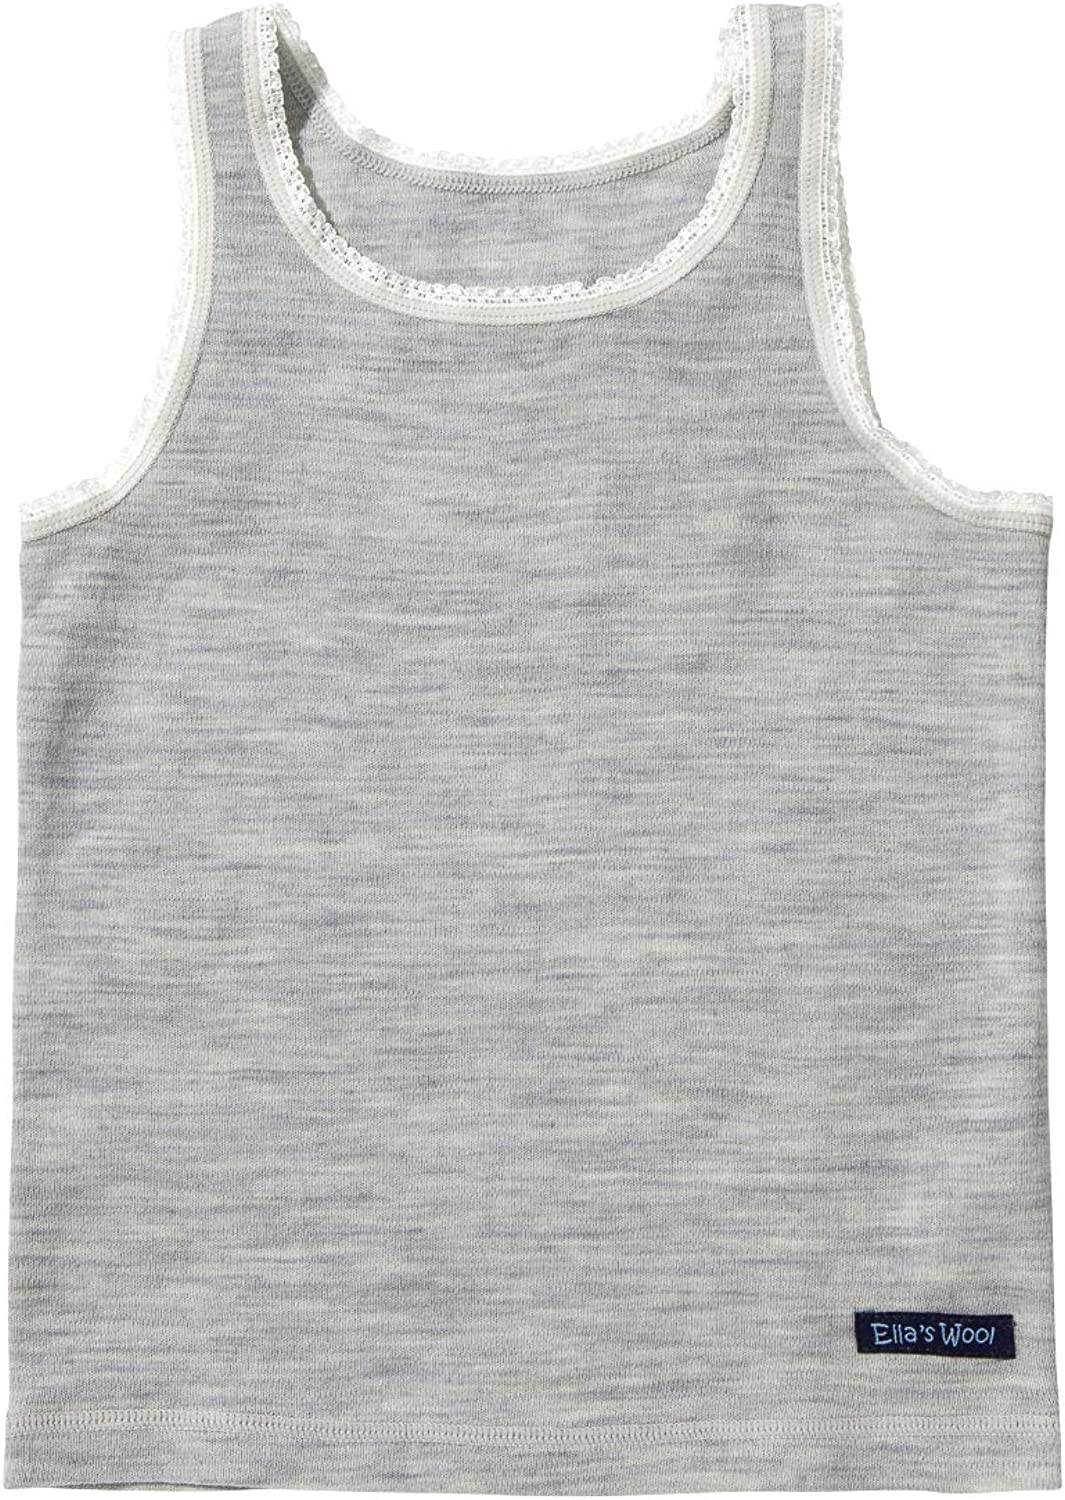 Ella's Wool Merino Base Layer Selling Top Tank Lace w Reservation